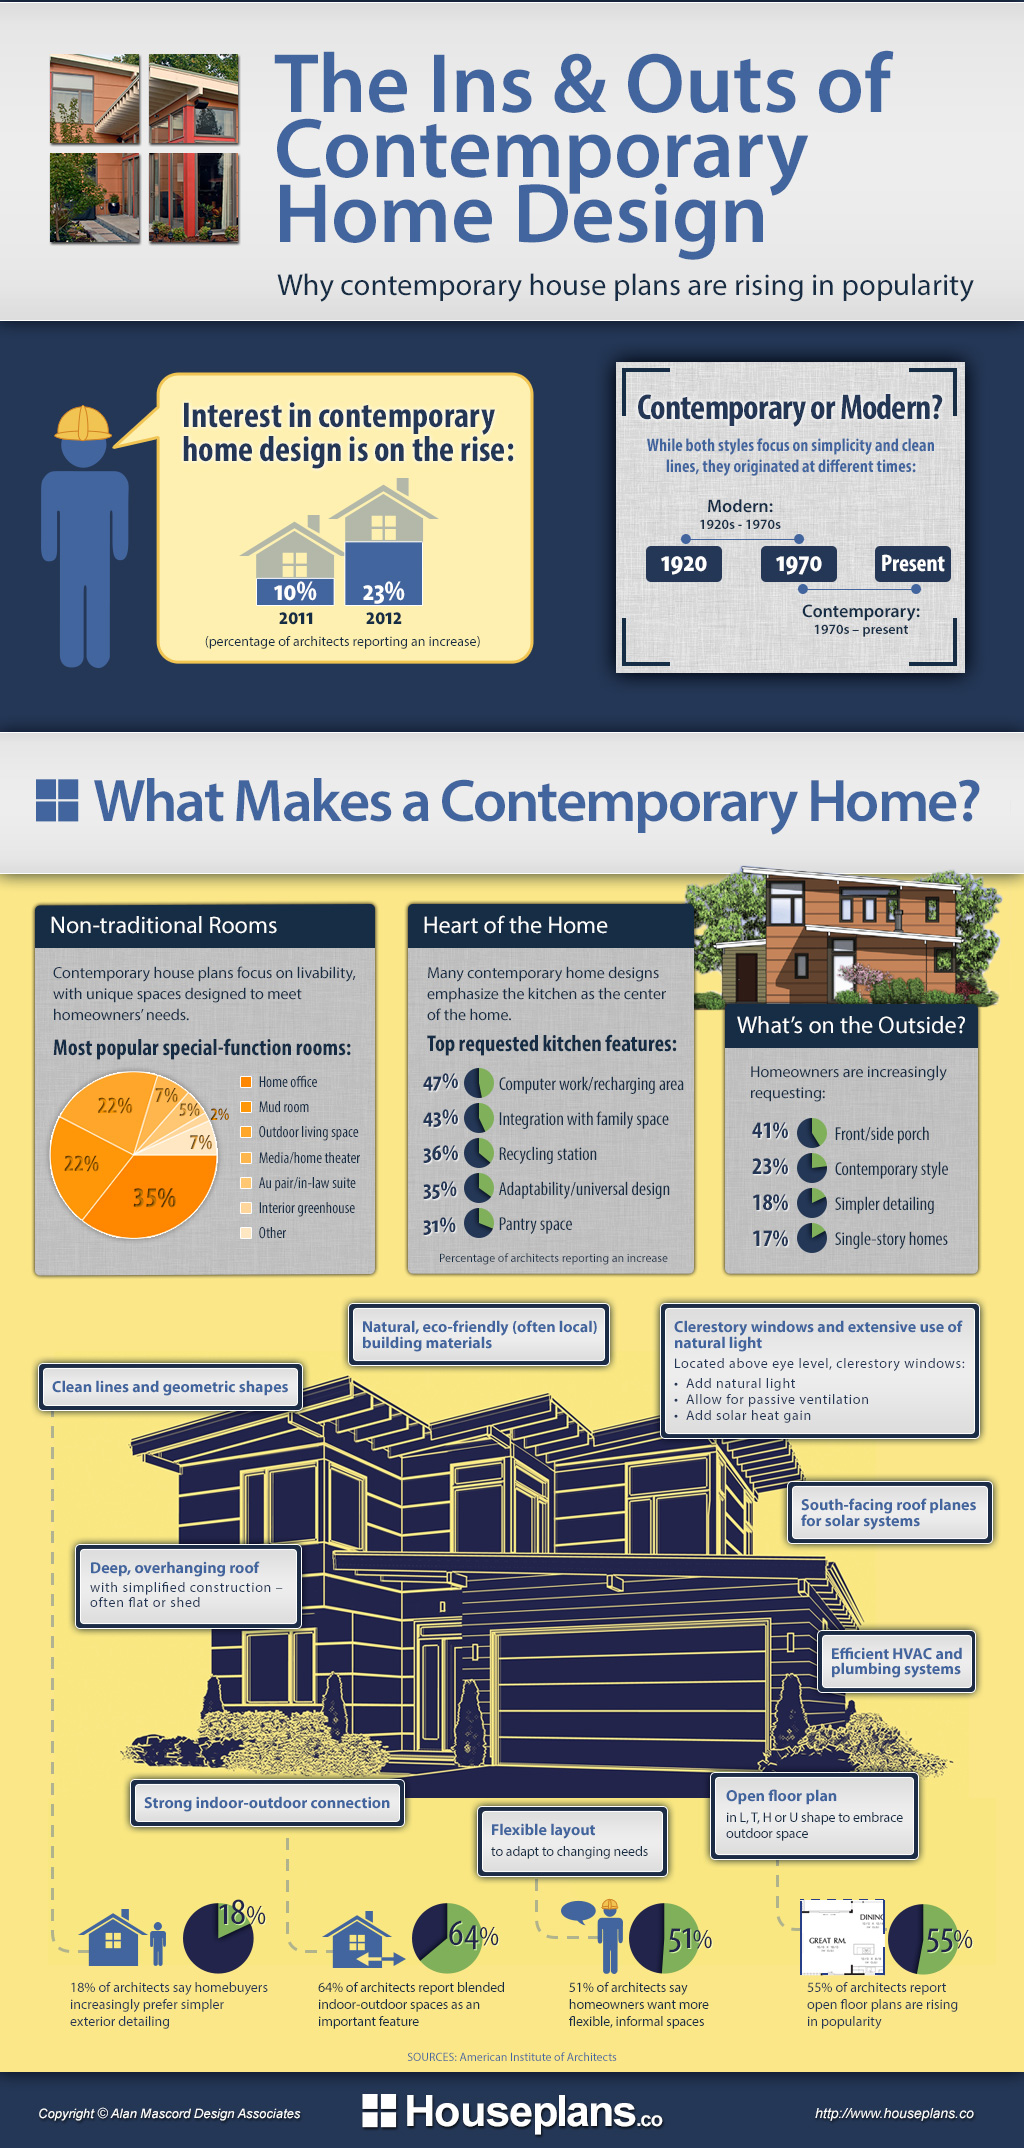 Contemporary Home Design Infographic by Houseplans.co